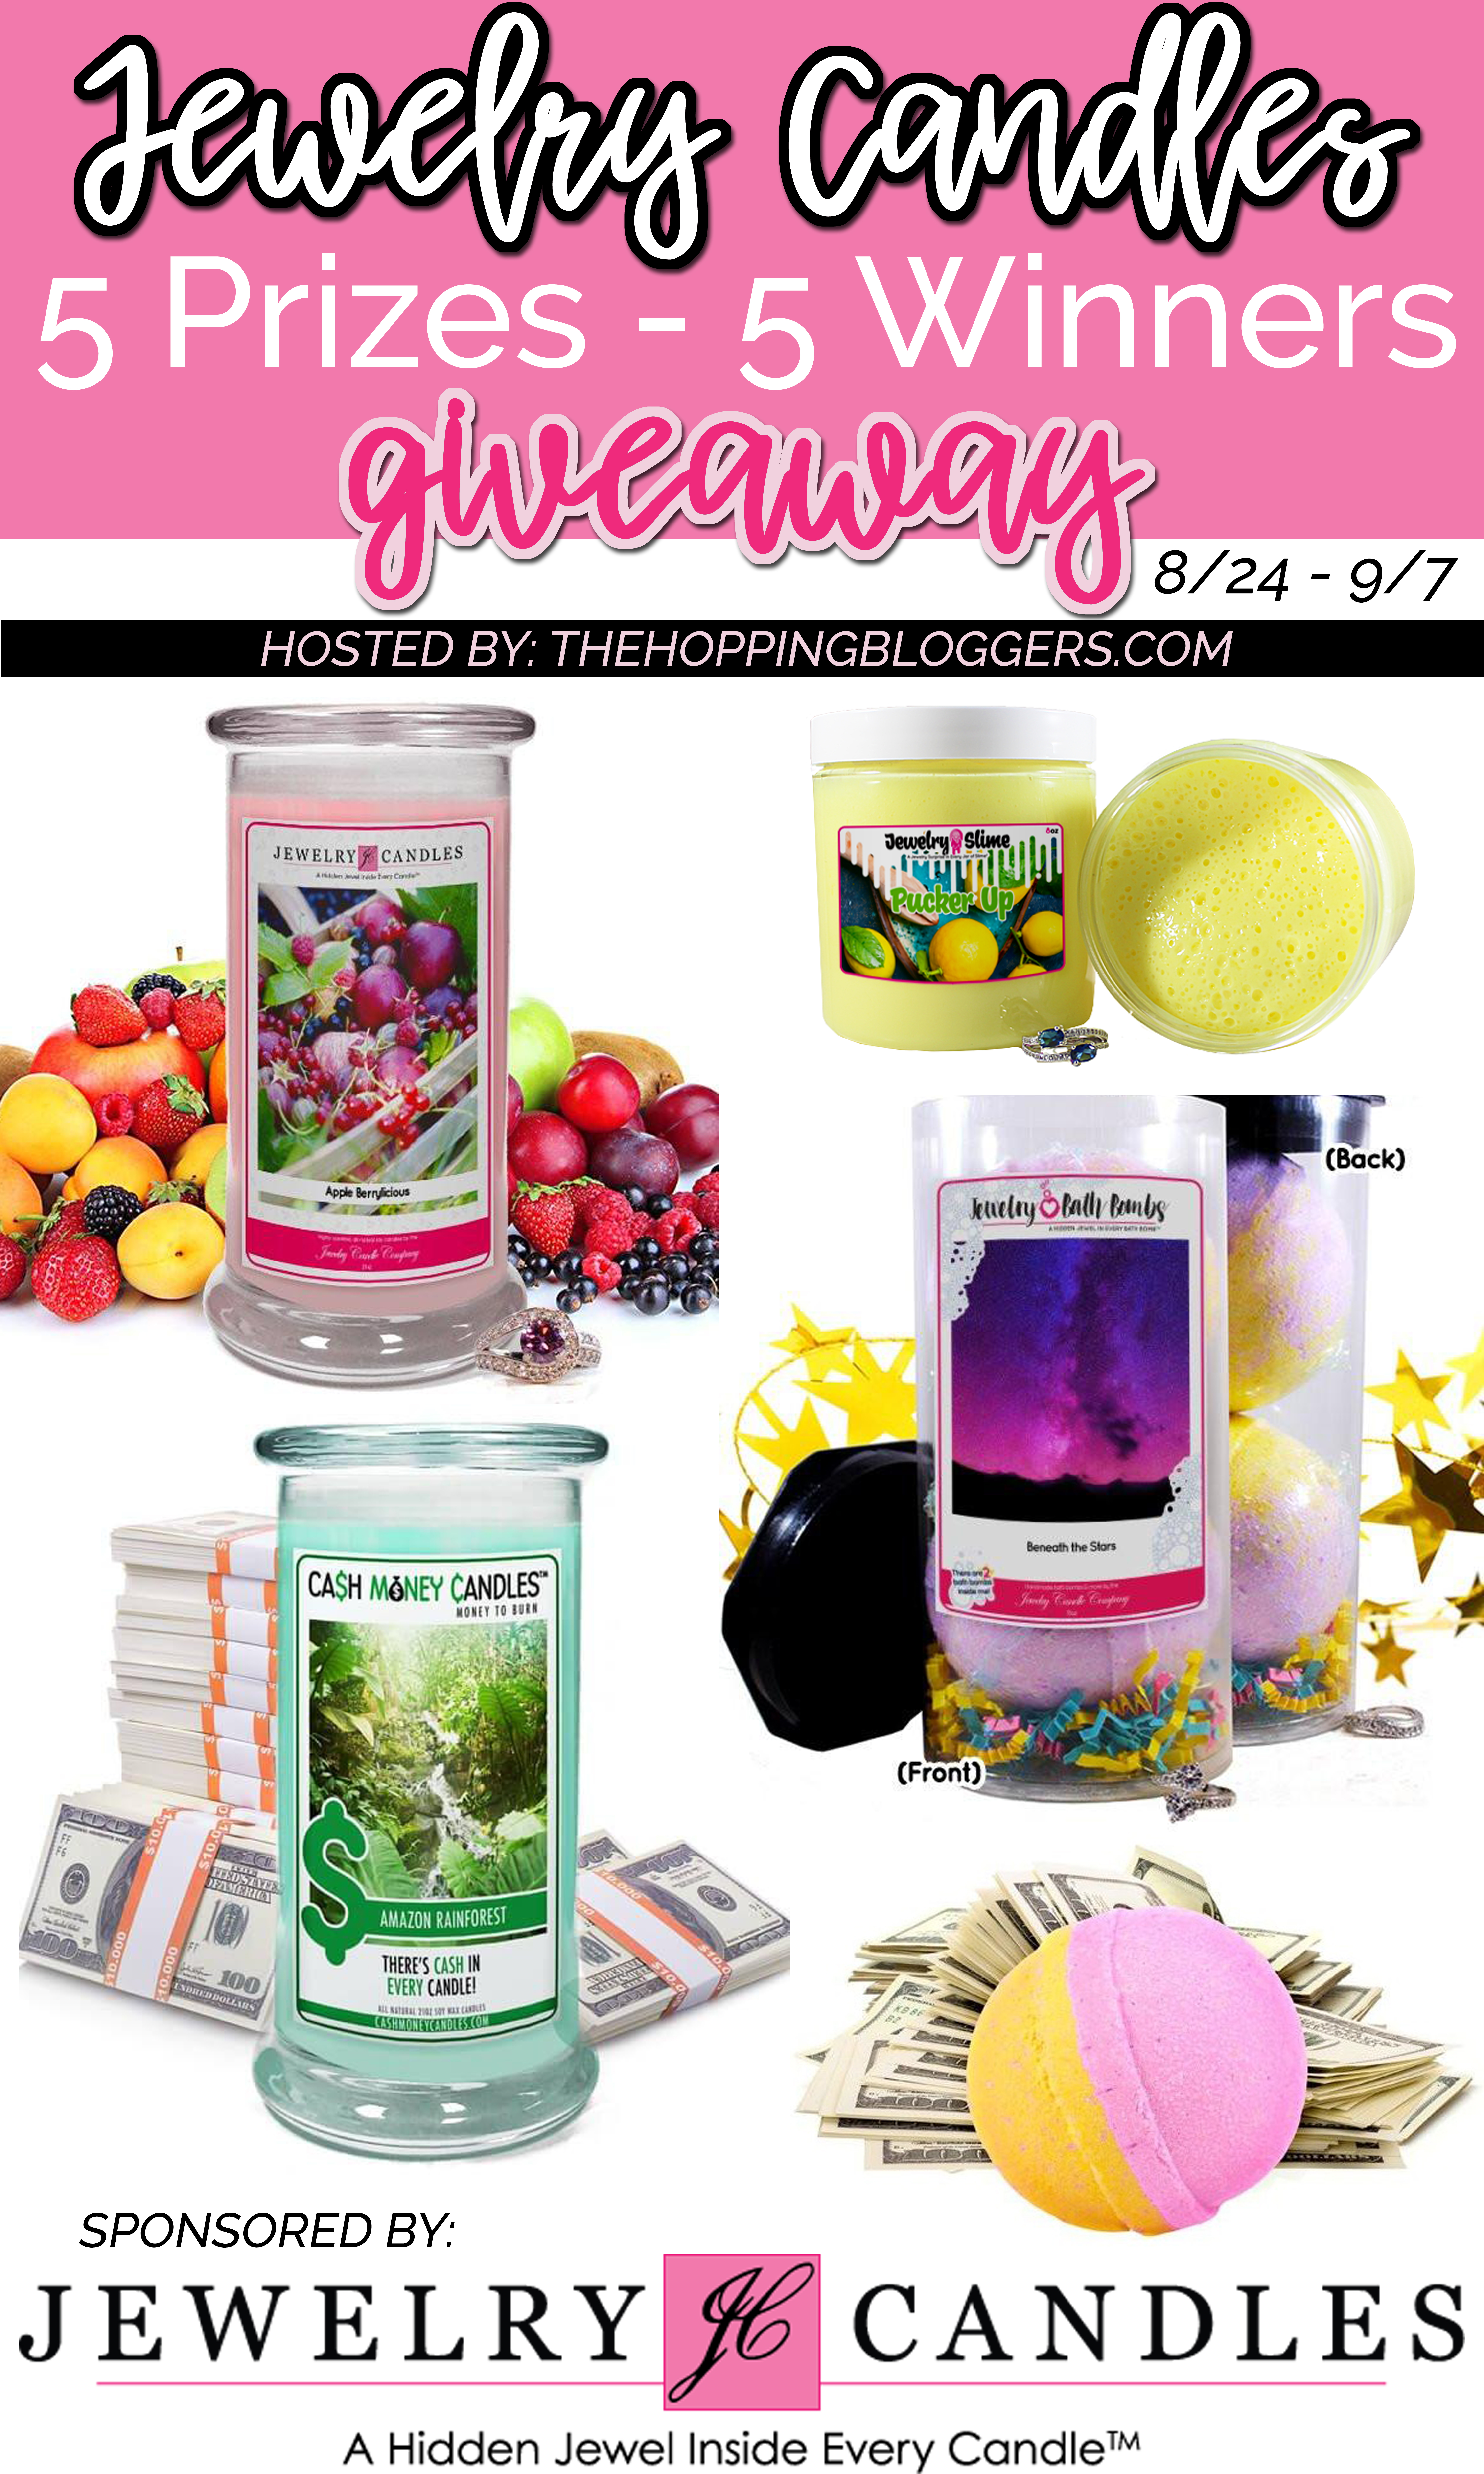 Jewelry Candles Giveaway | #ad #TheHoppingBloggers #THBgiveaway #JewelryCandles